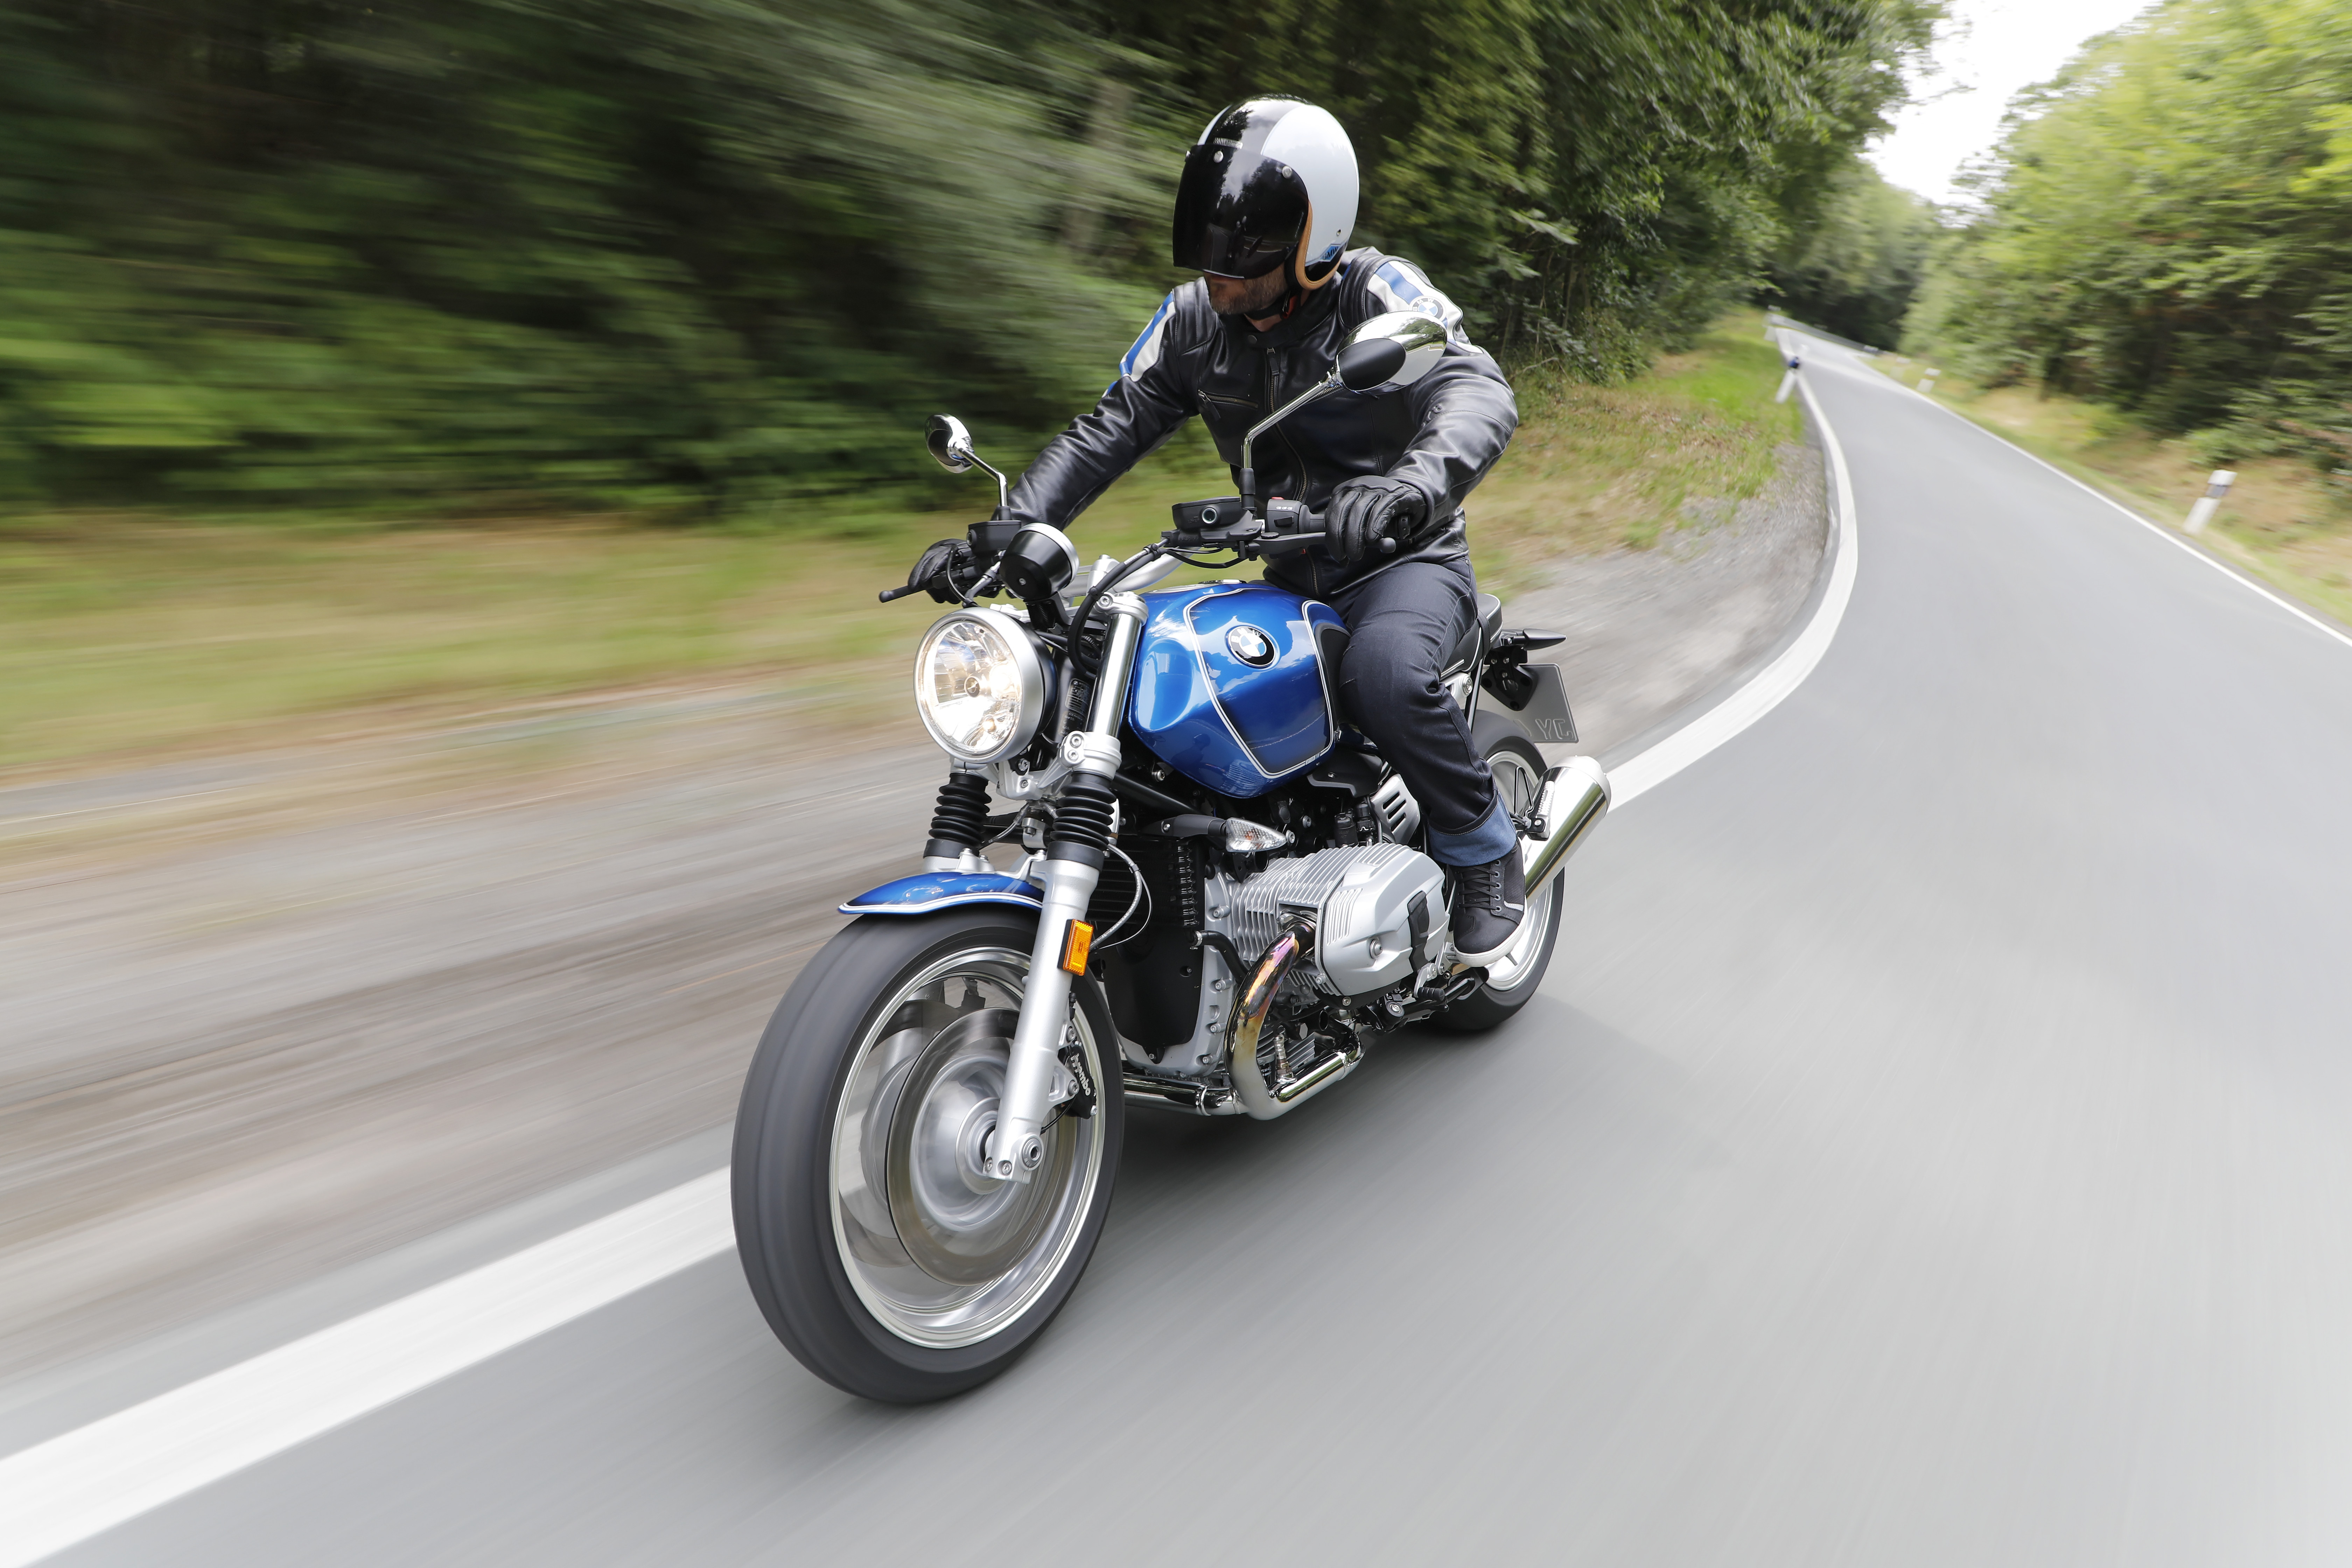 2019 BMW R nineT /5 Front View Riding Exterior